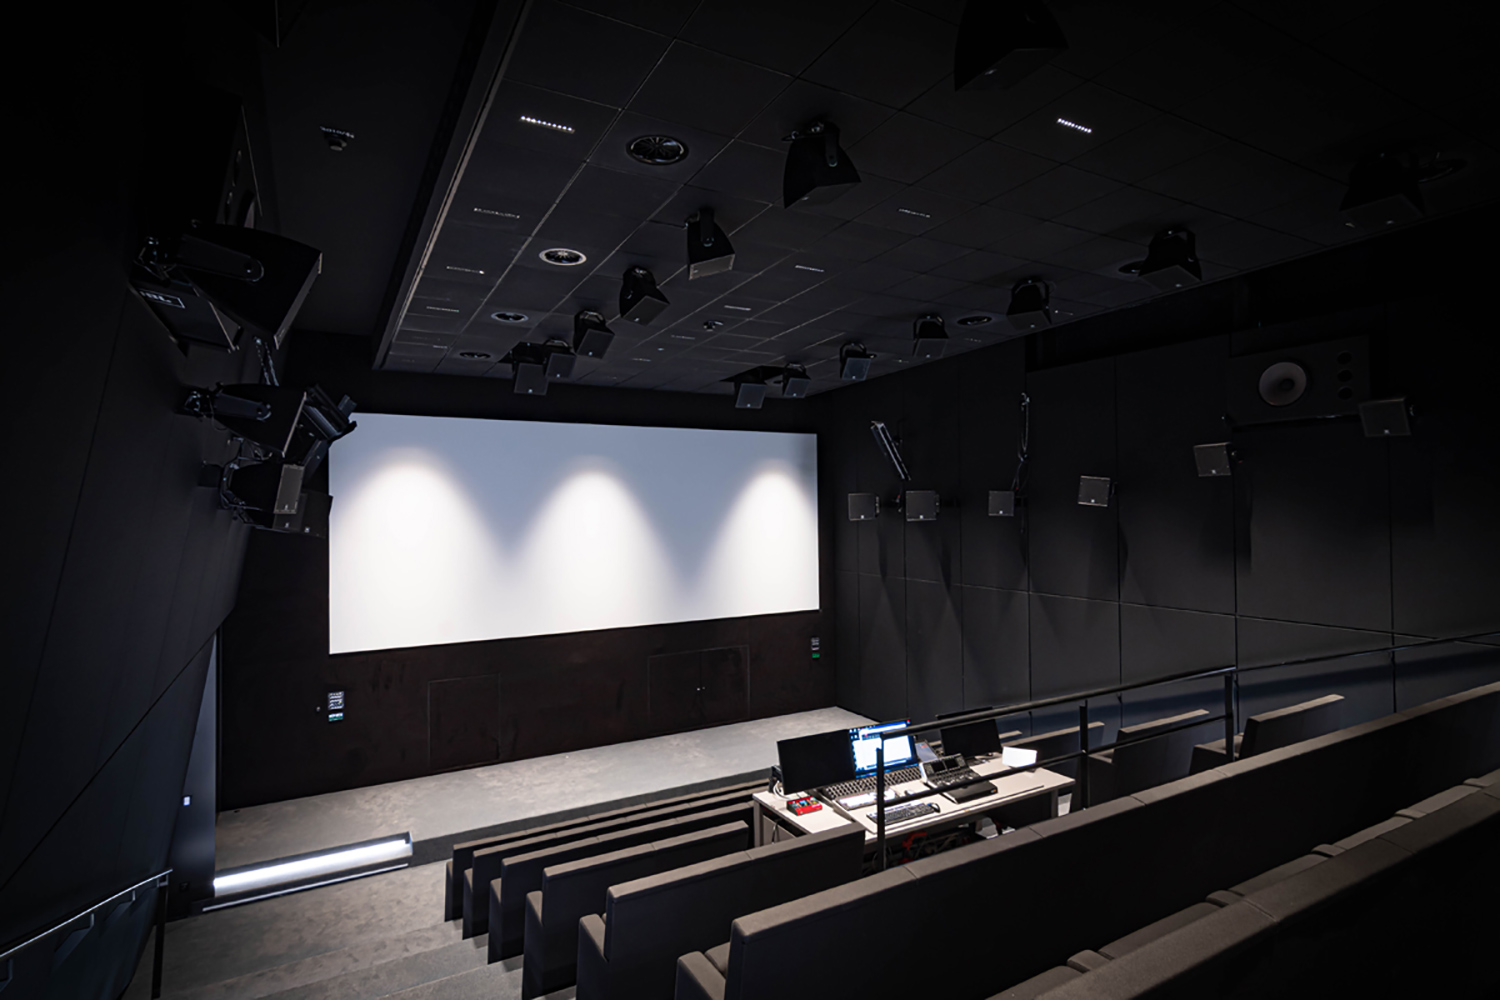 The University of Music and Performing Arts of Vienna new Future Art Lab designed by WSDG. Arthouse Kino.